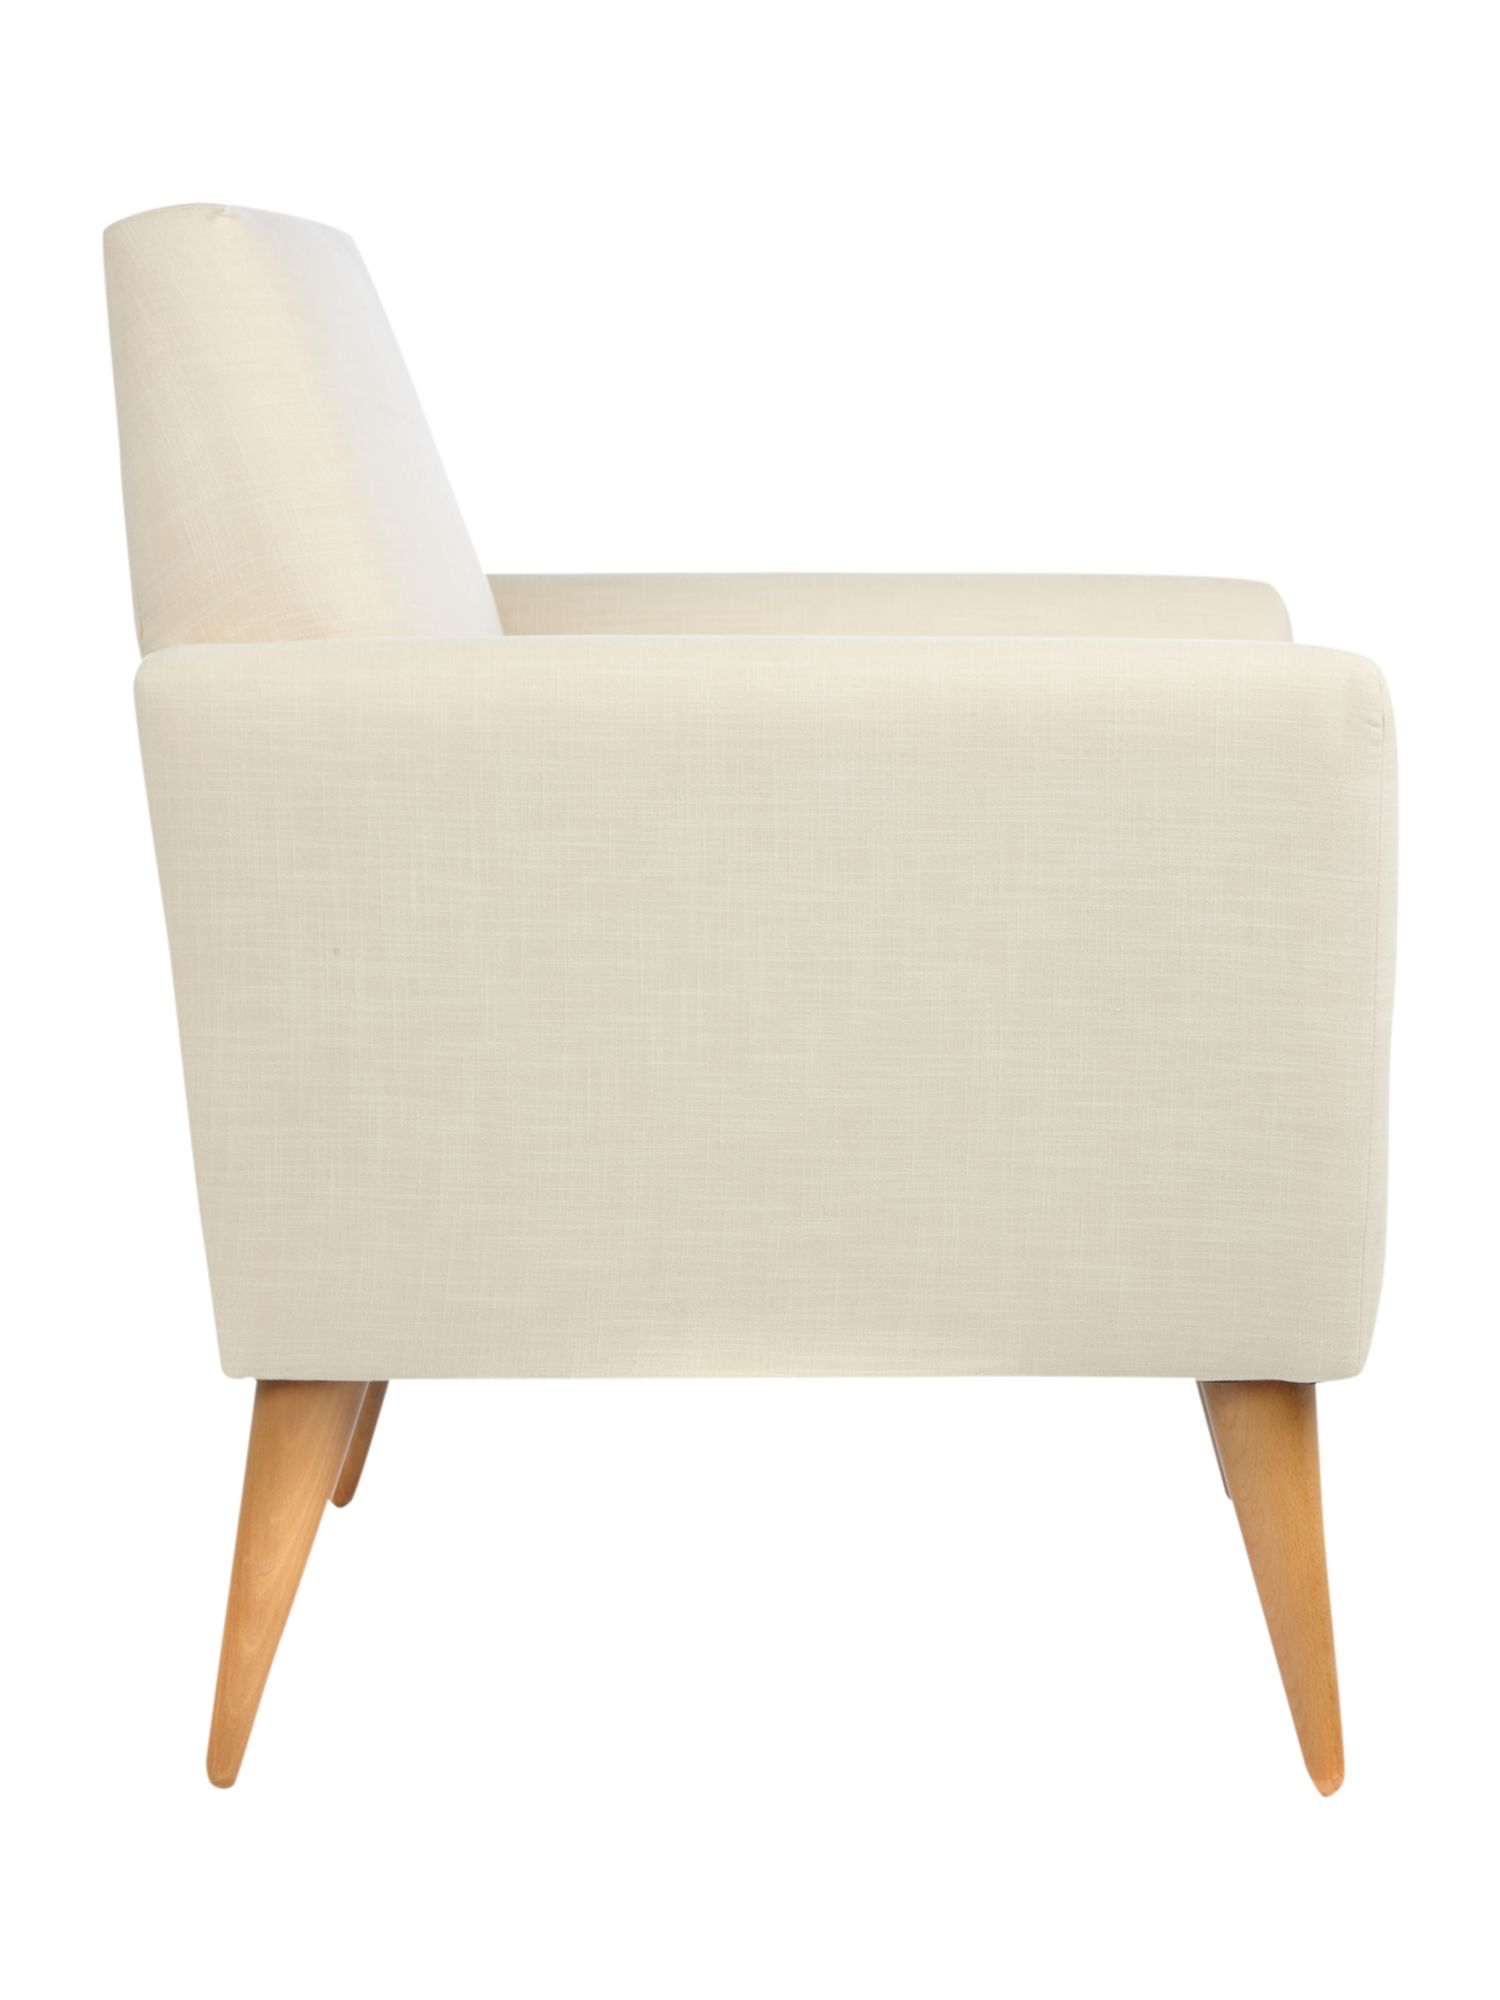 Harper occasional chair